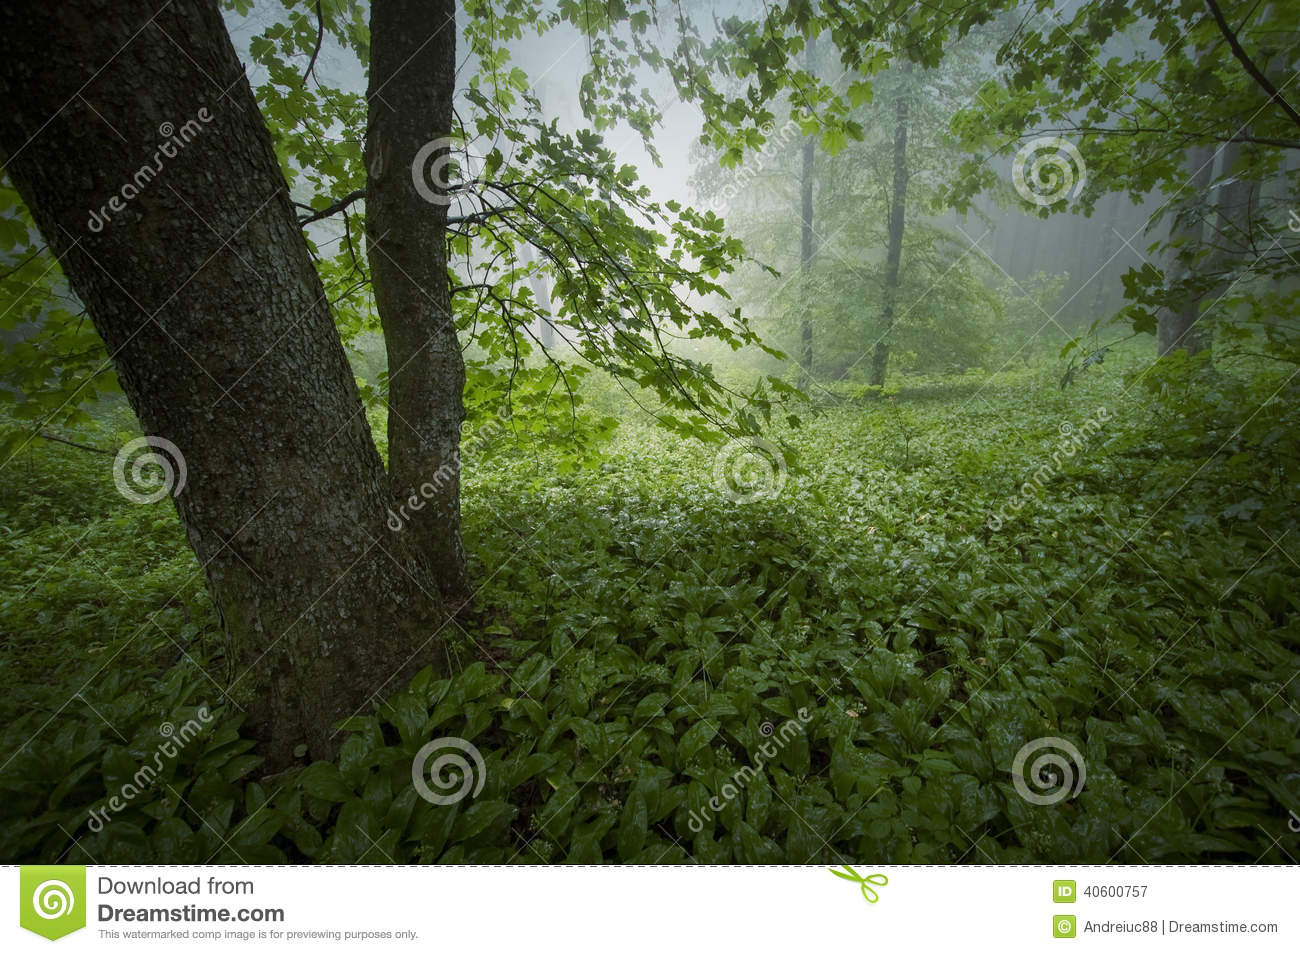 Green lush vegetation in forest after rain